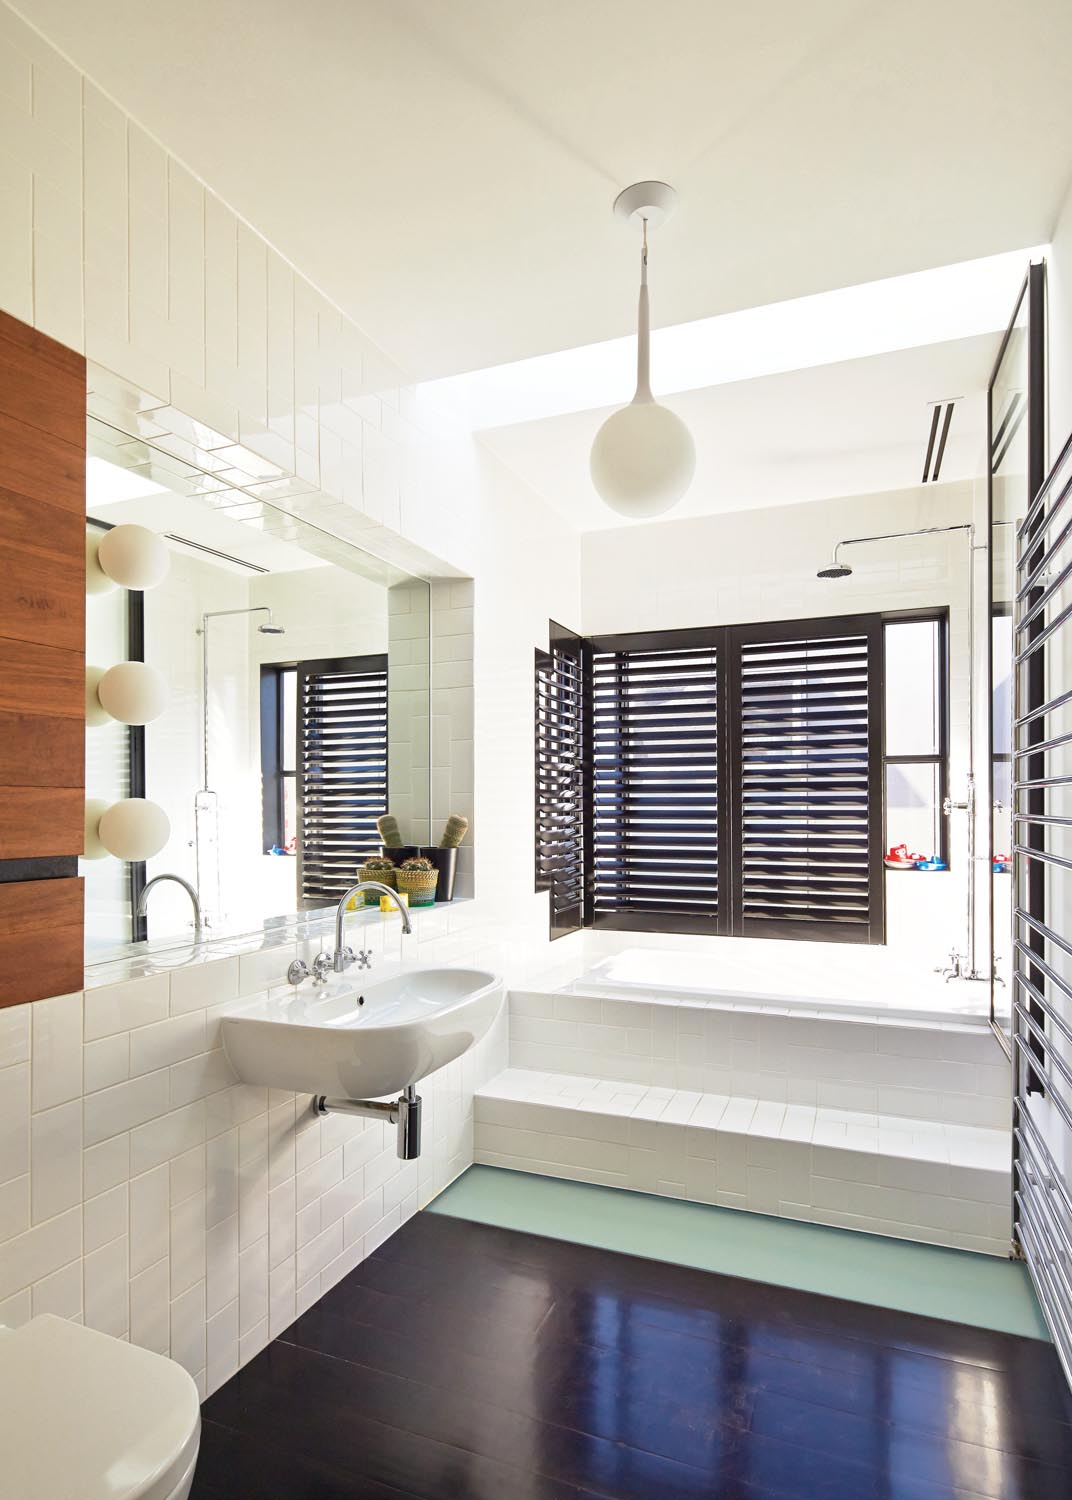 A modern bathroom is a simple but clean design for the home